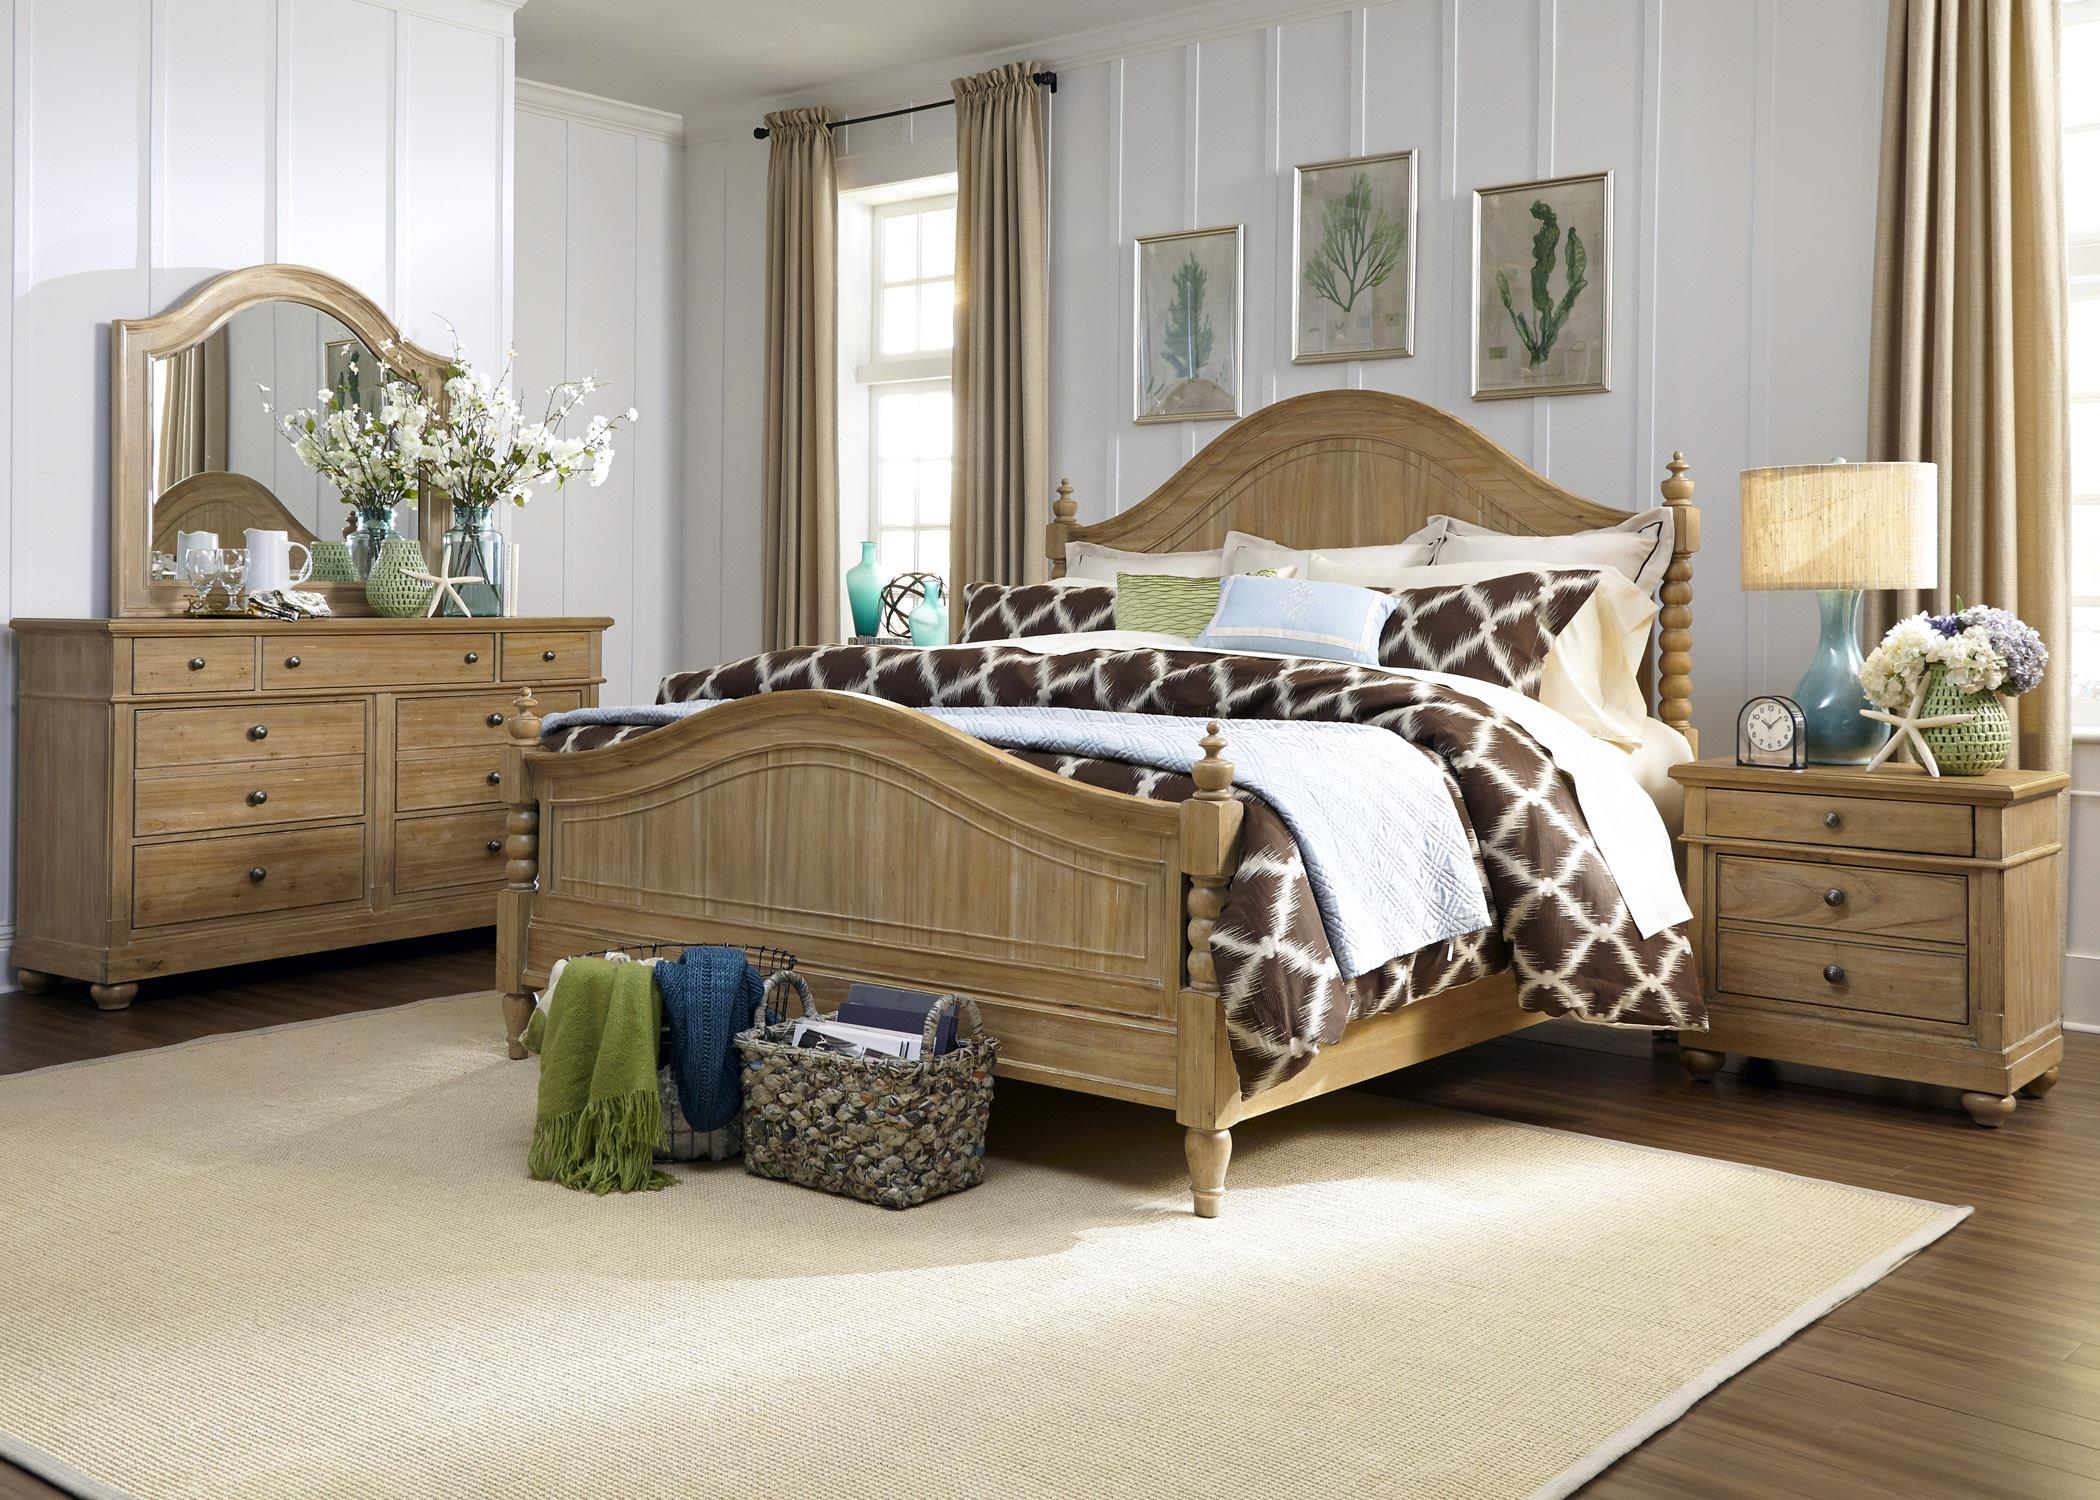 Liberty Furniture Harbor View Queen Bedroom Group - Item Number: 531-BR-QPSDMN